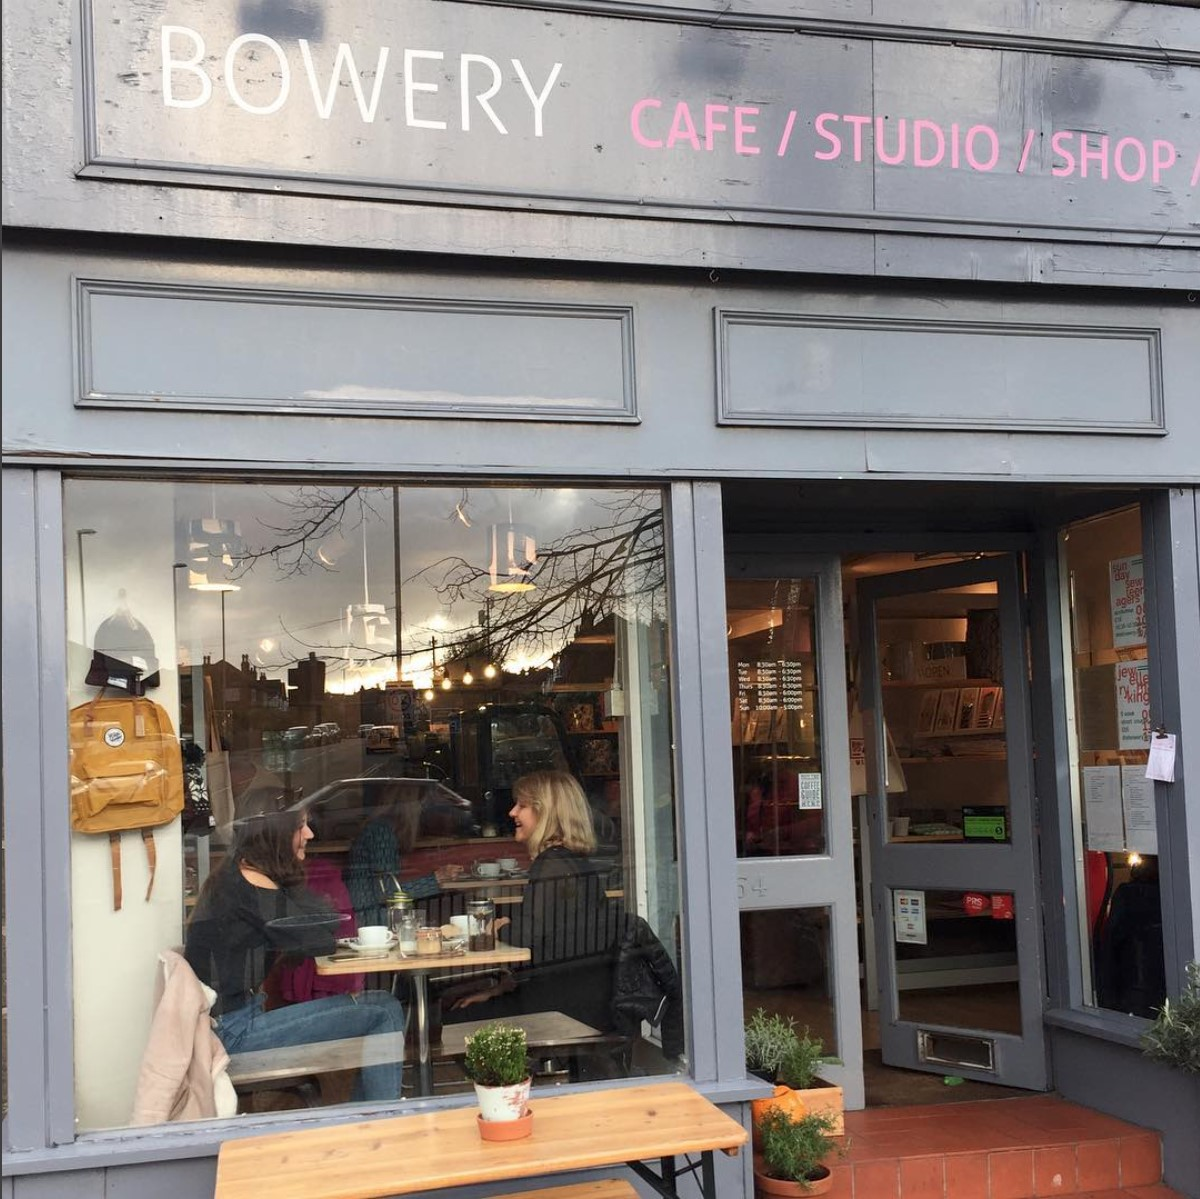 Student Georgie's image of The Bowery